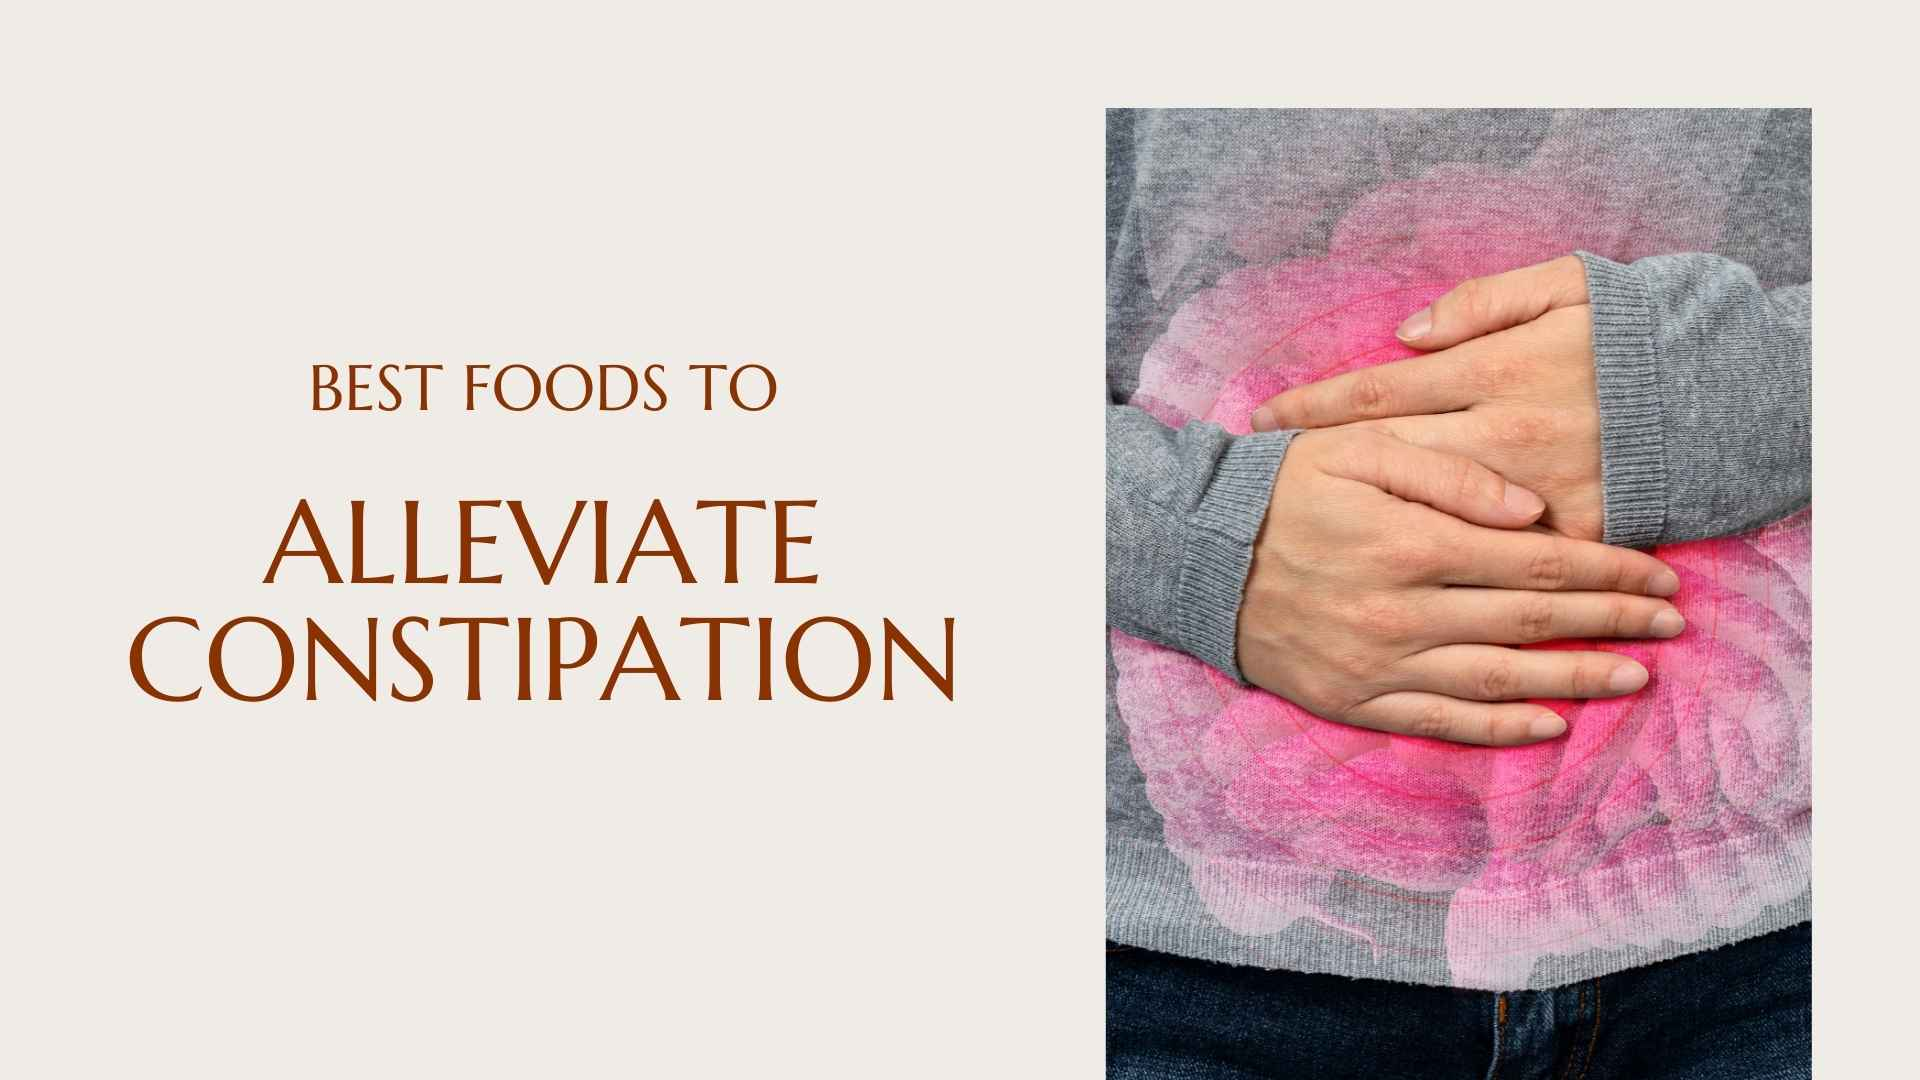 Best Foods To Alleviate Constipation